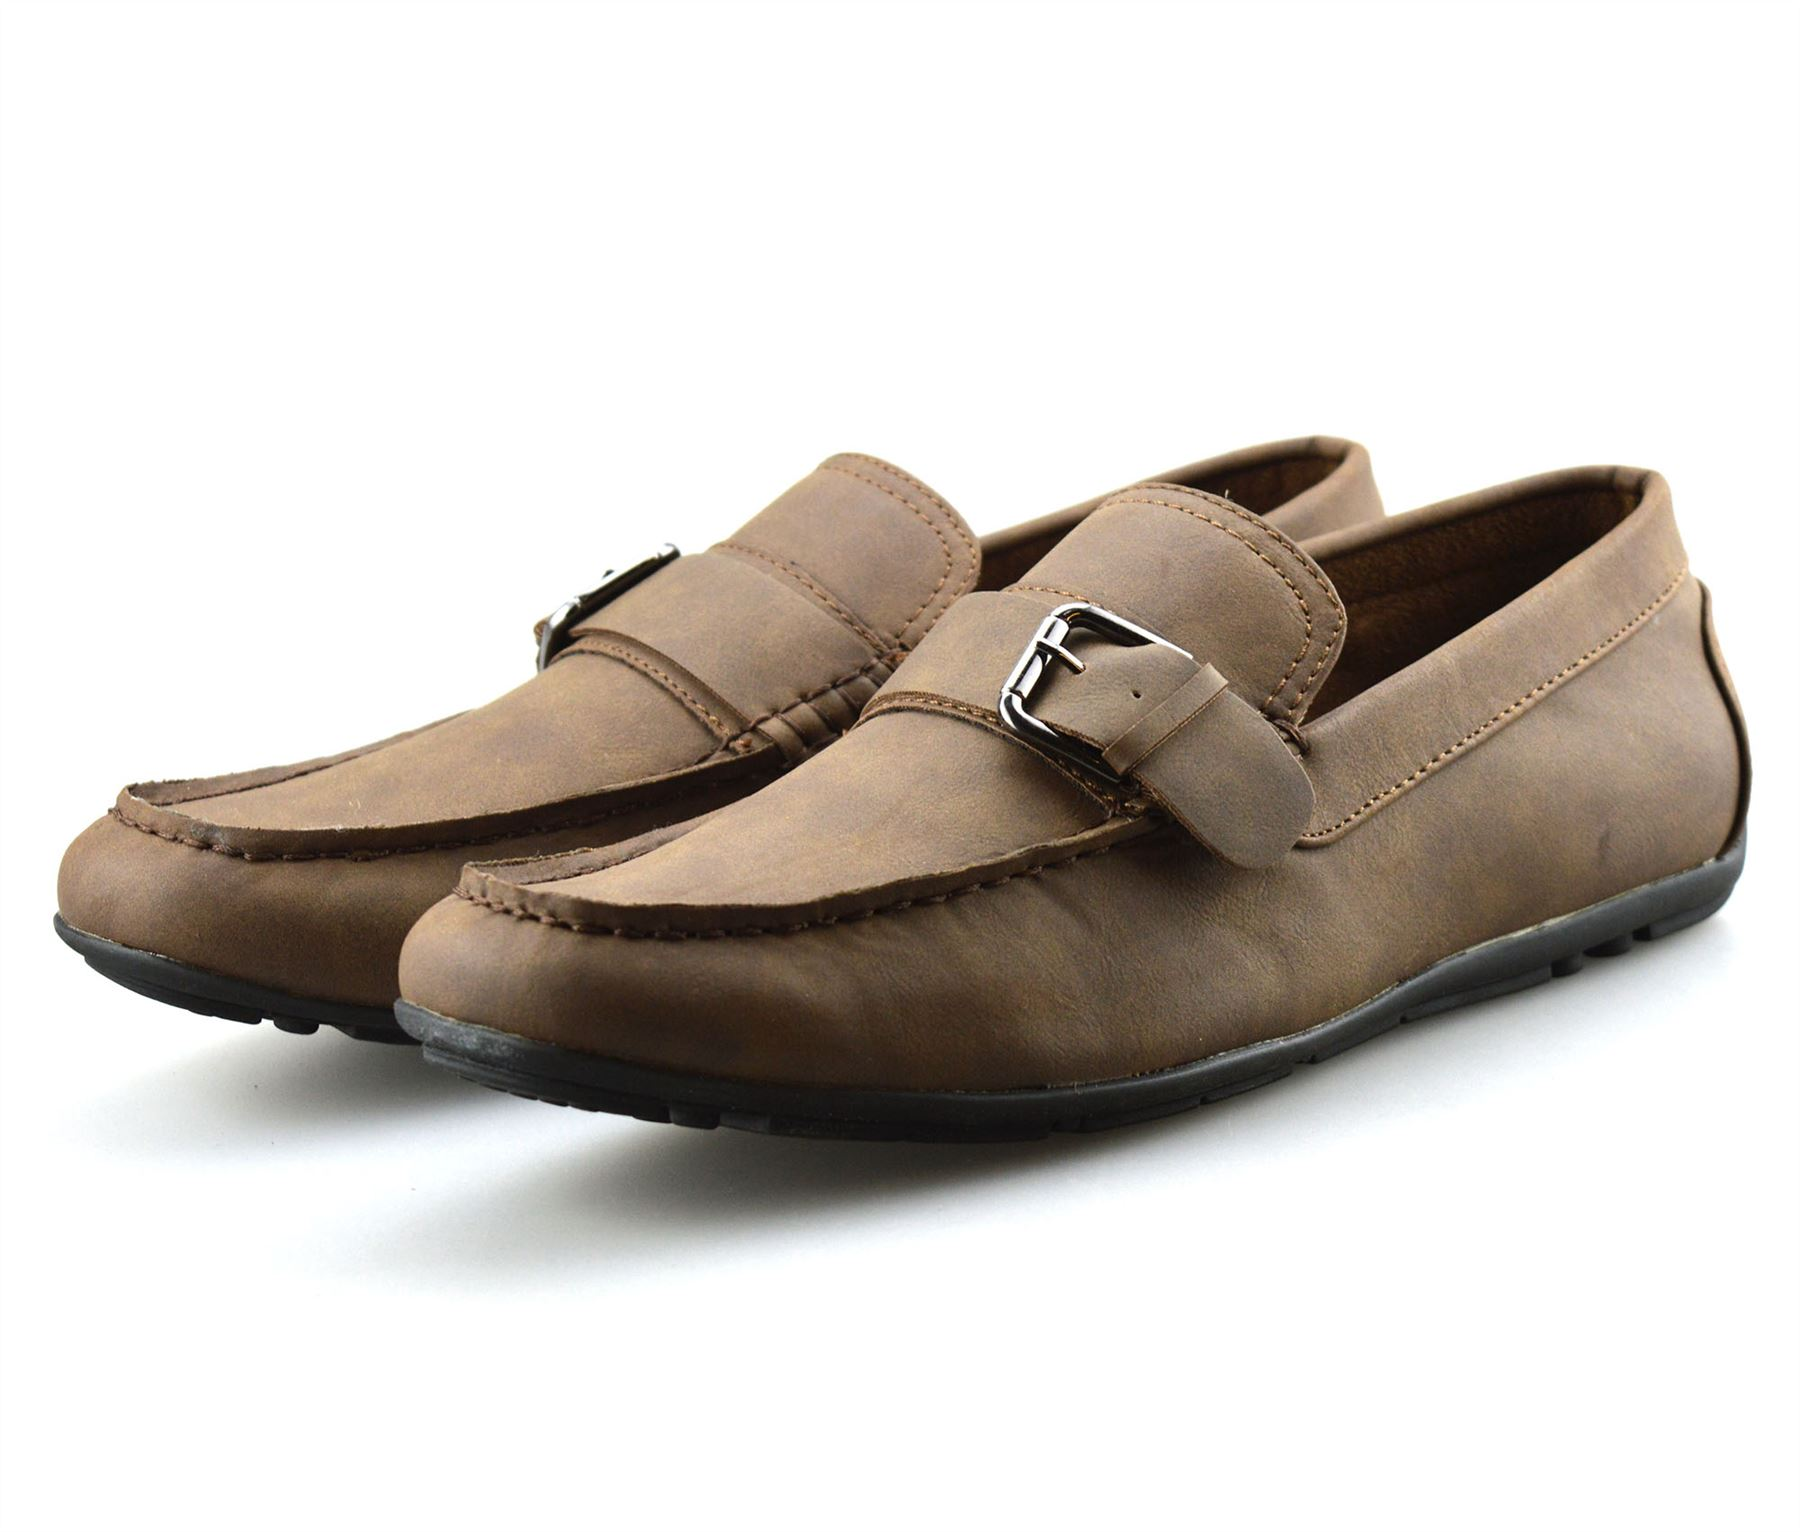 Mens-New-Slip-On-Boat-Deck-Casual-Mocassin-Designer-Loafers-Driving-Shoes-Size thumbnail 18